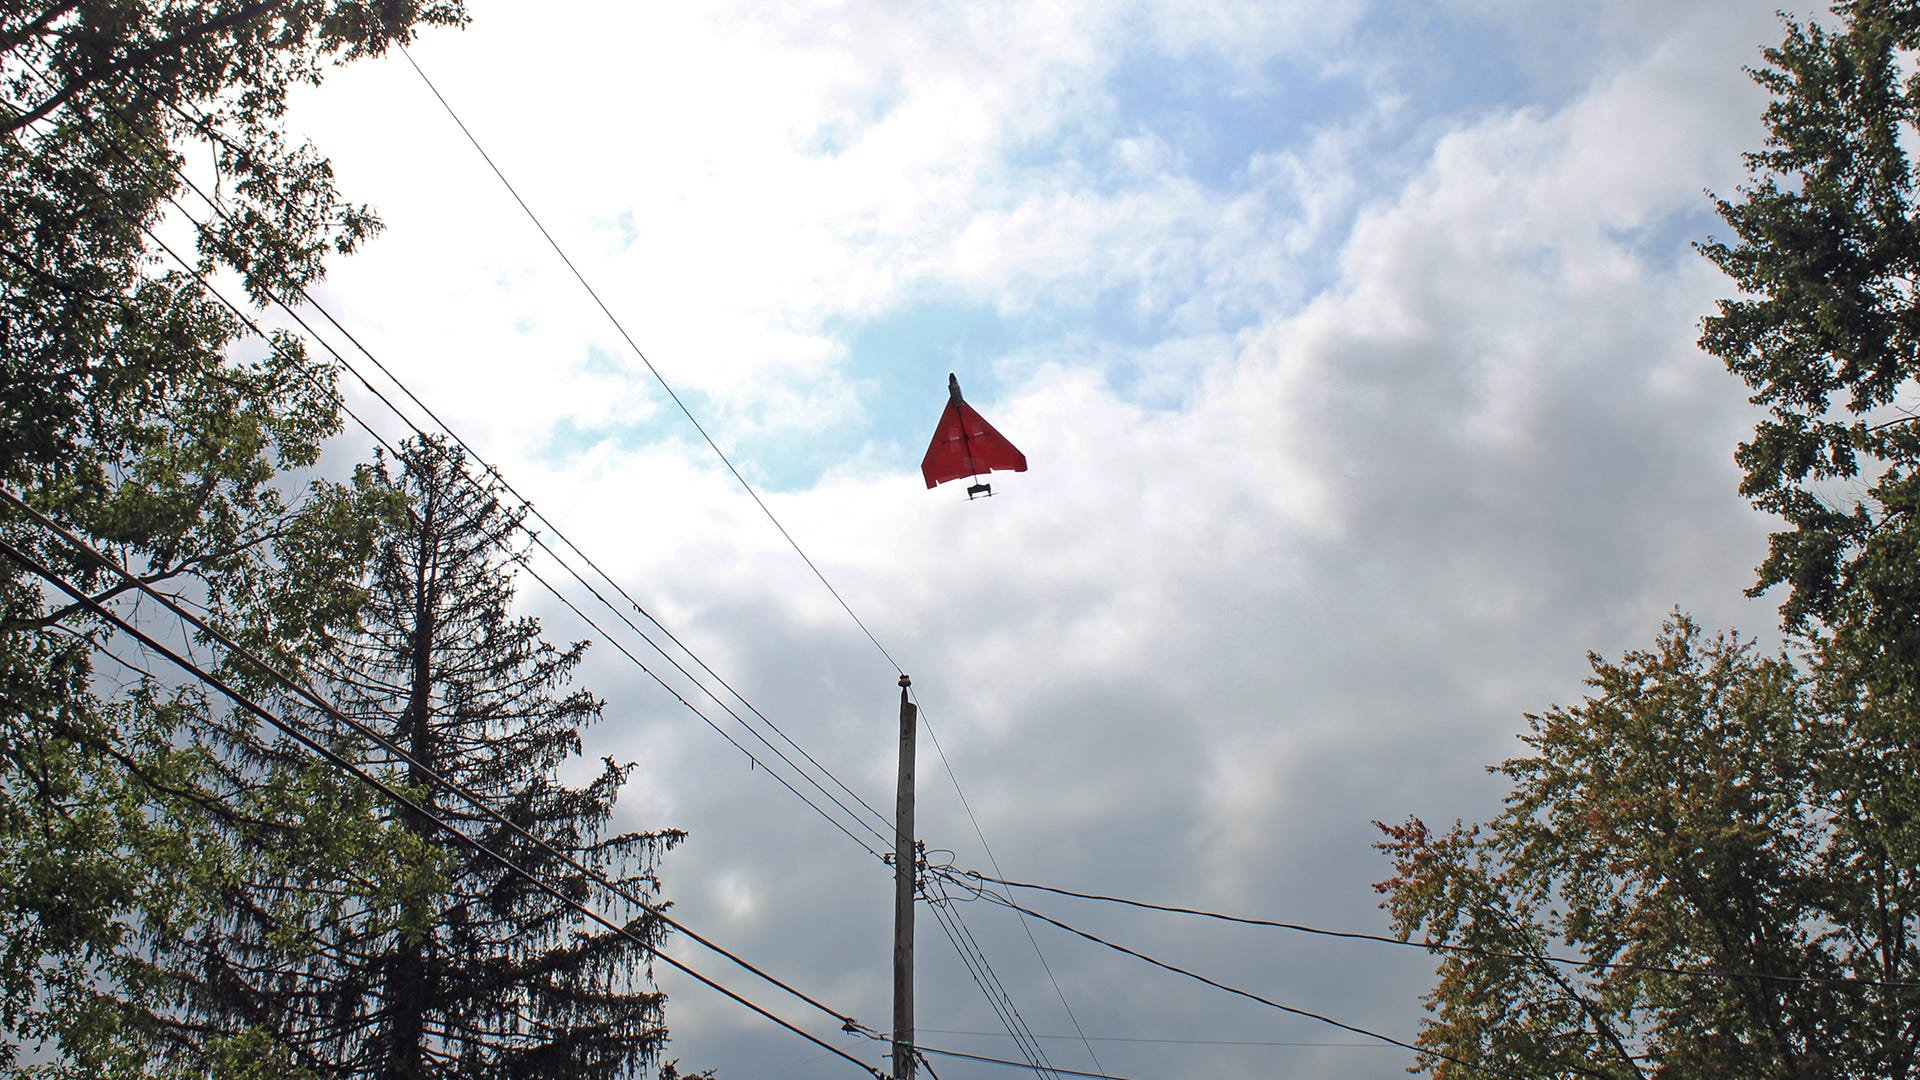 An RC Paper plane flying high in the sky towards power lines.